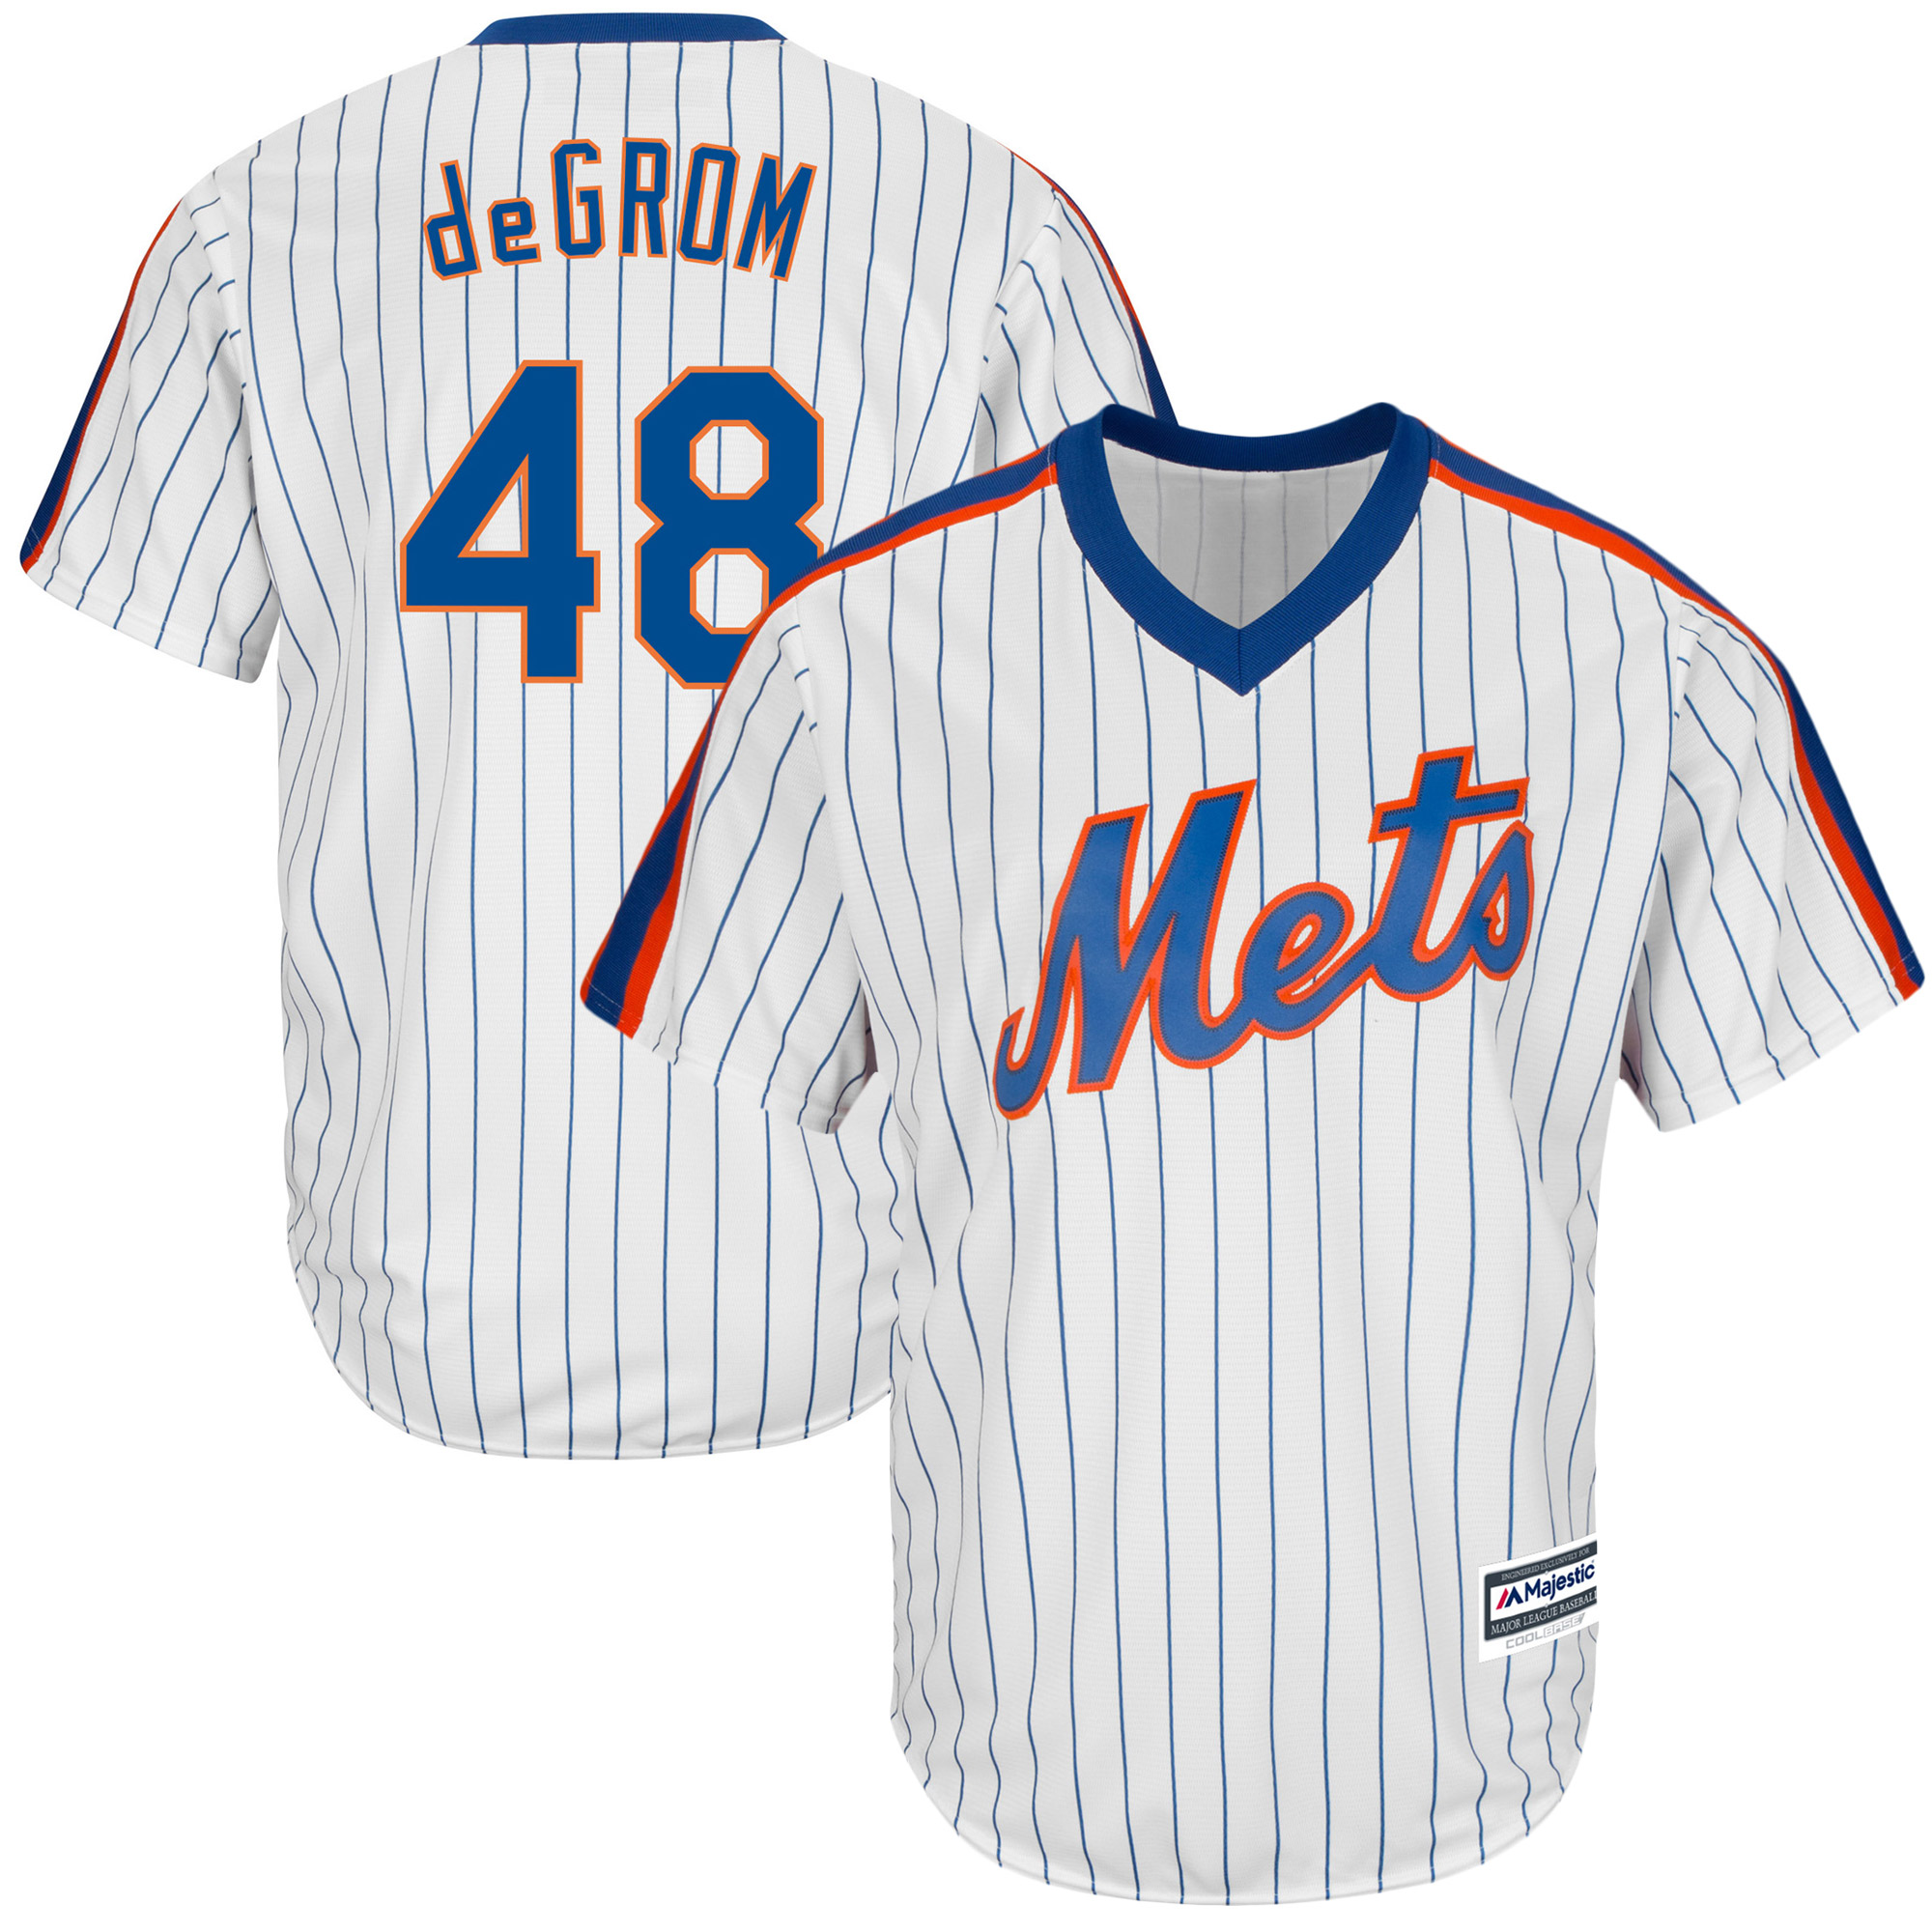 Jacob deGrom New York Mets Majestic Official Cool Base Player Jersey - White